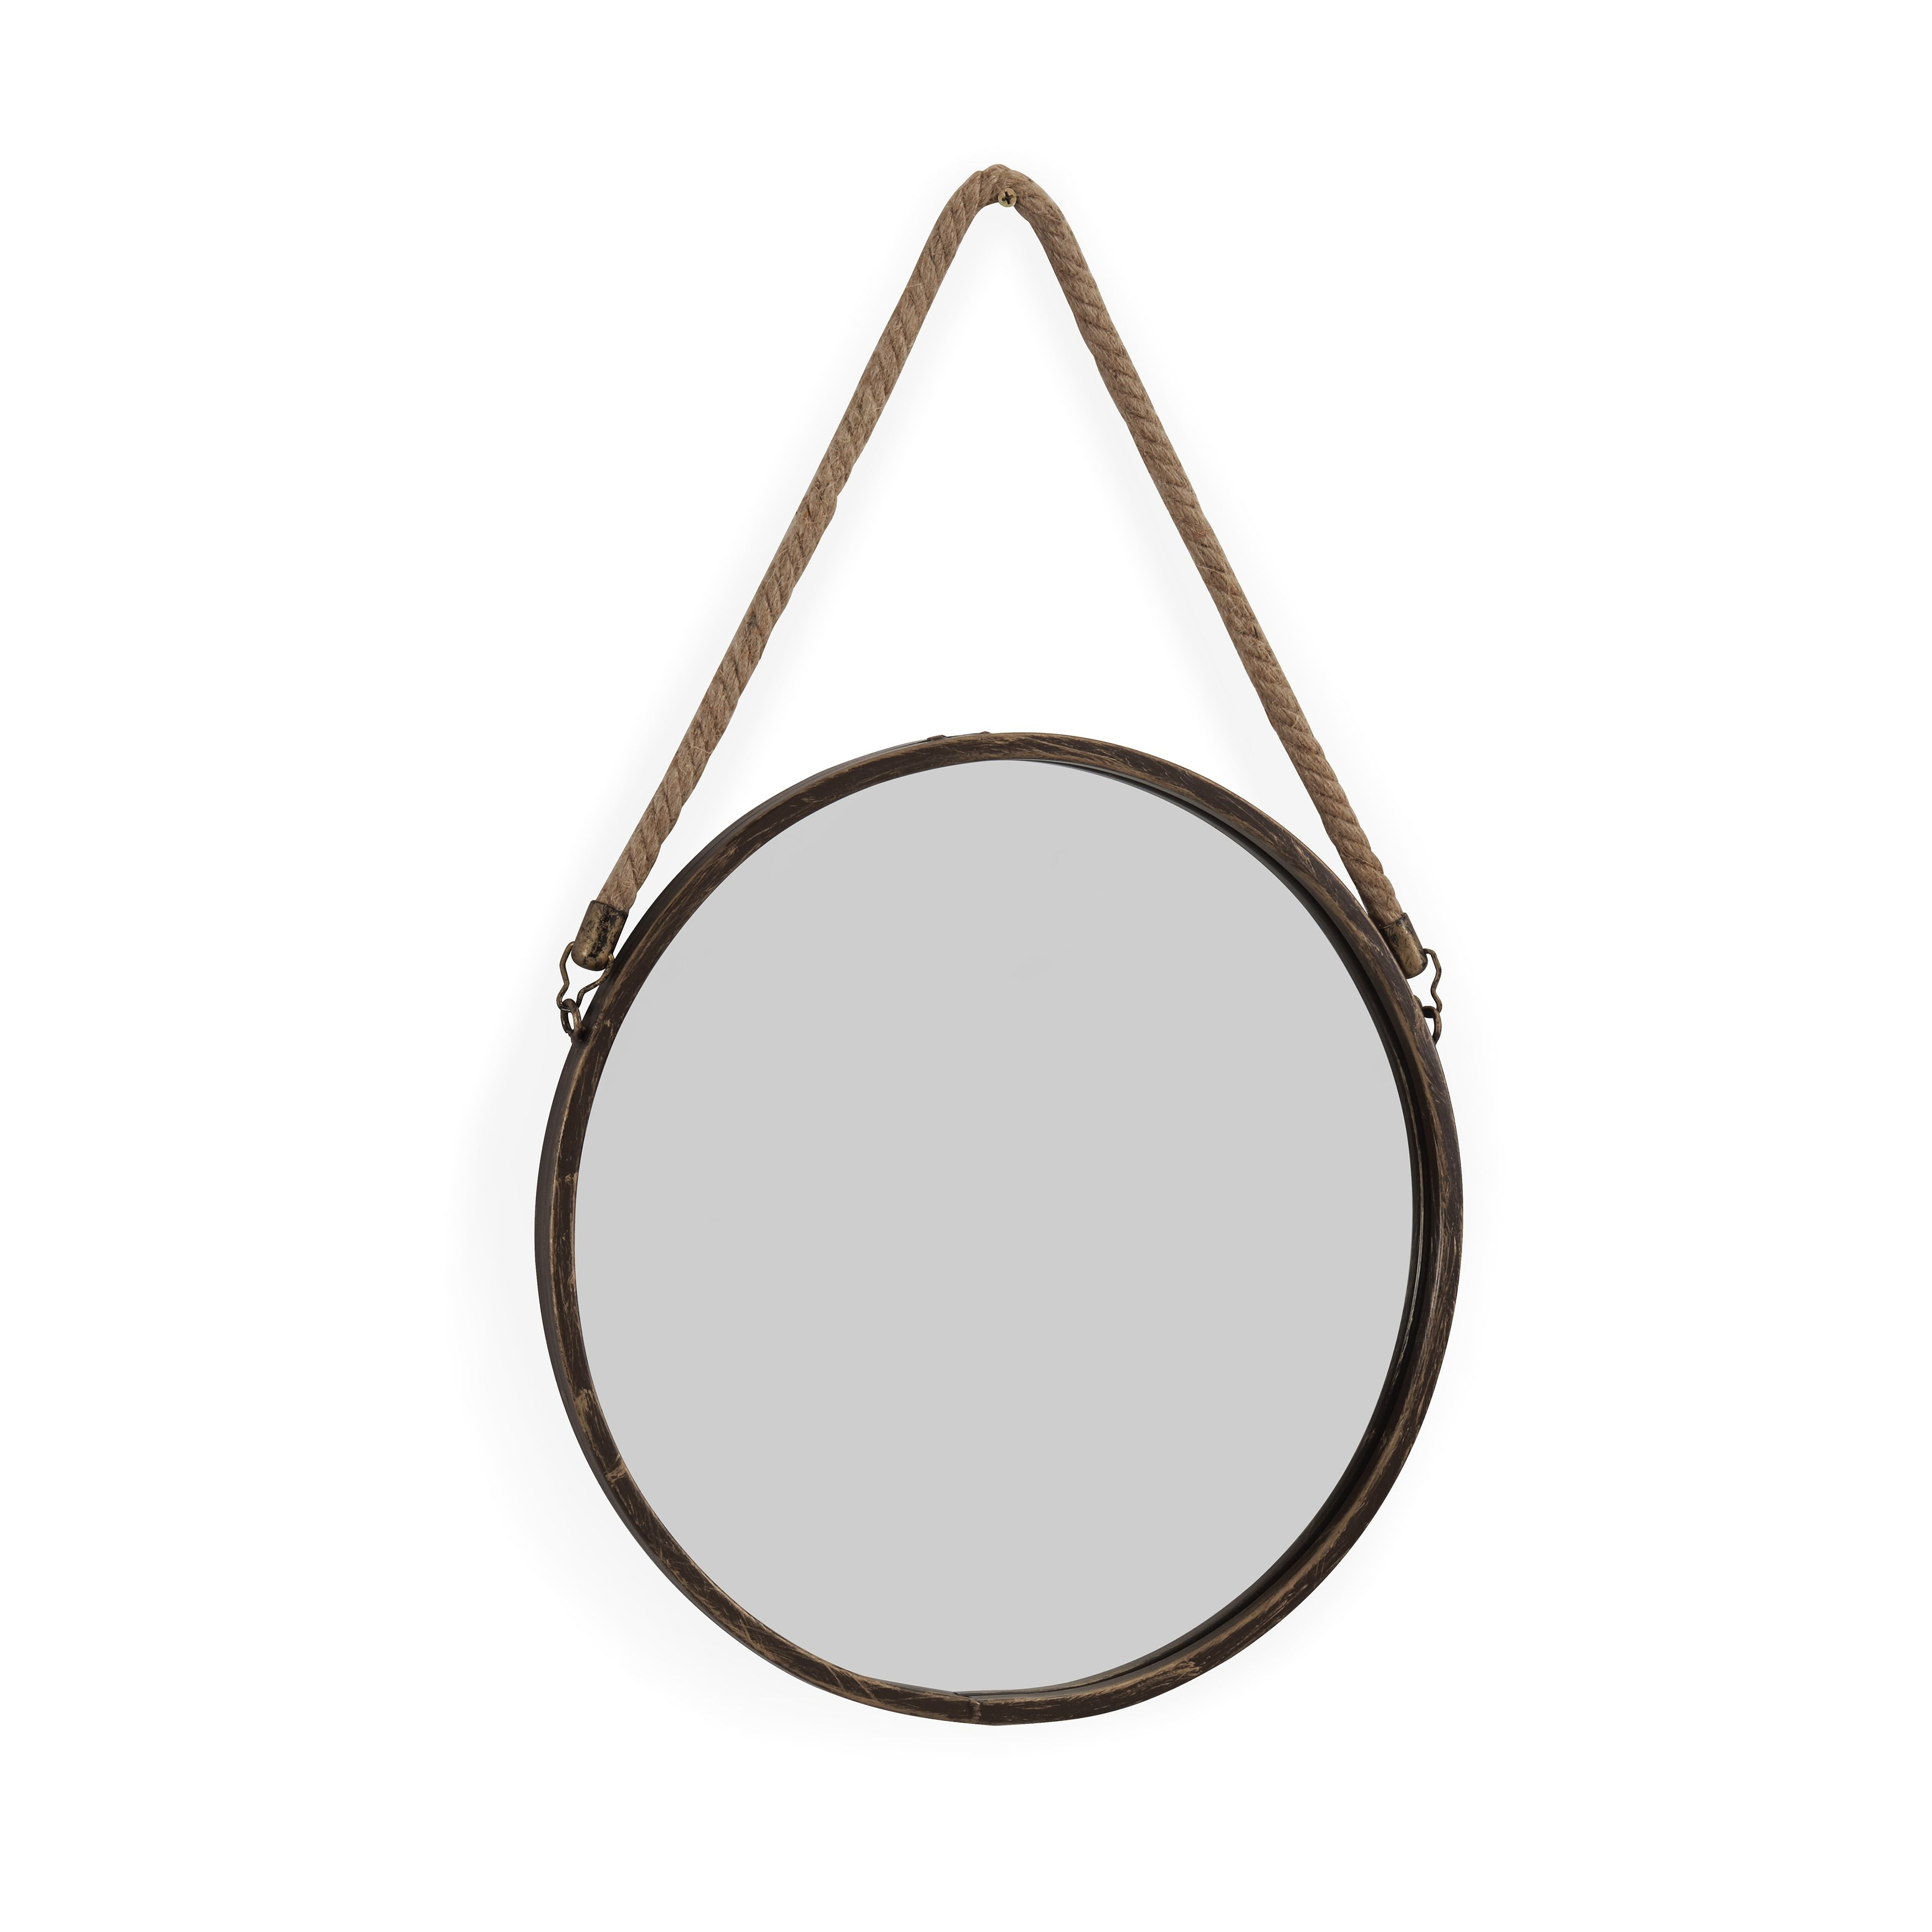 Danya B Patina Goldtone 15 Inch Hanging Rope Round Mirror Antique Gold A N Rope Mirror Accent Mirrors Round Mirror With Rope